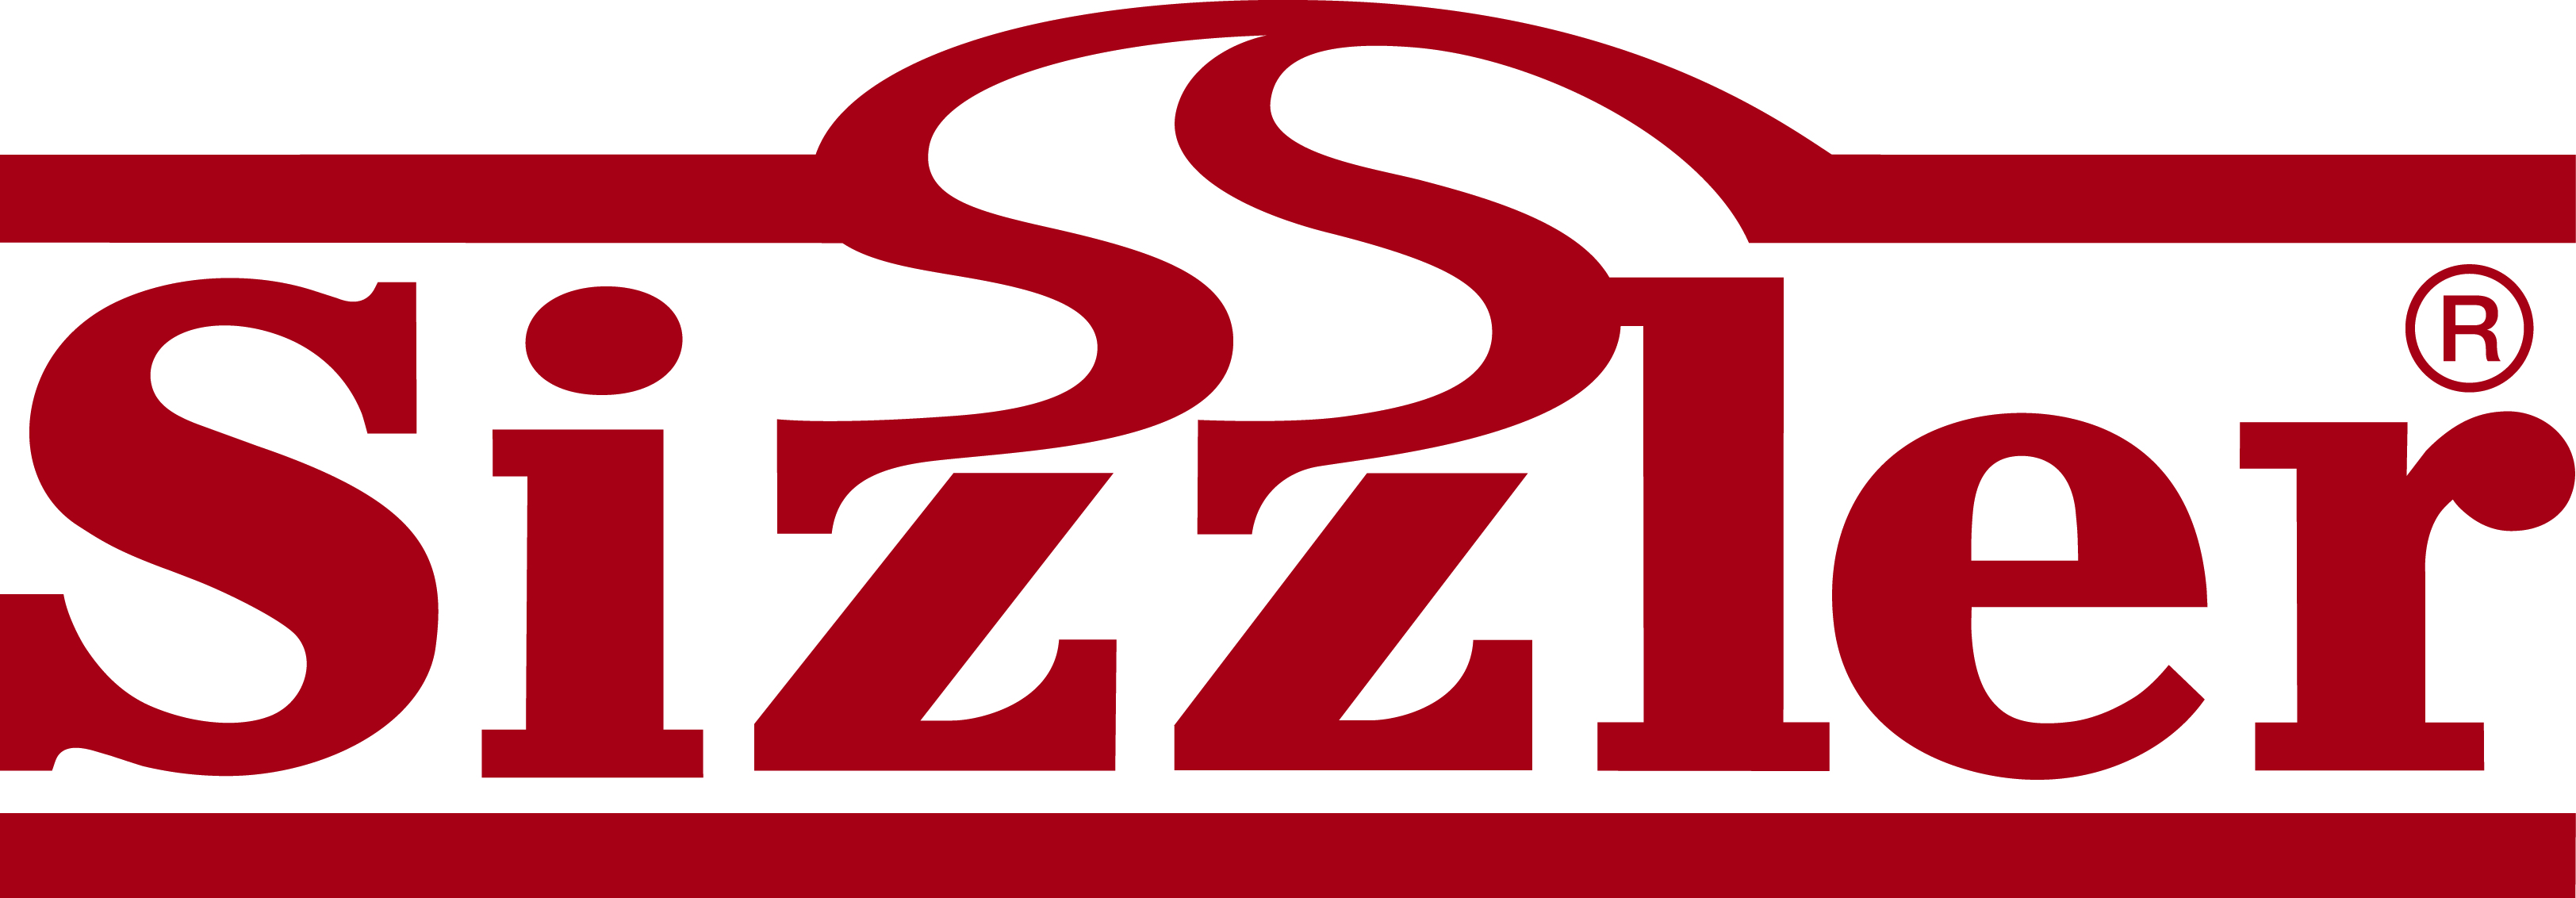 Image result for sizzler logo